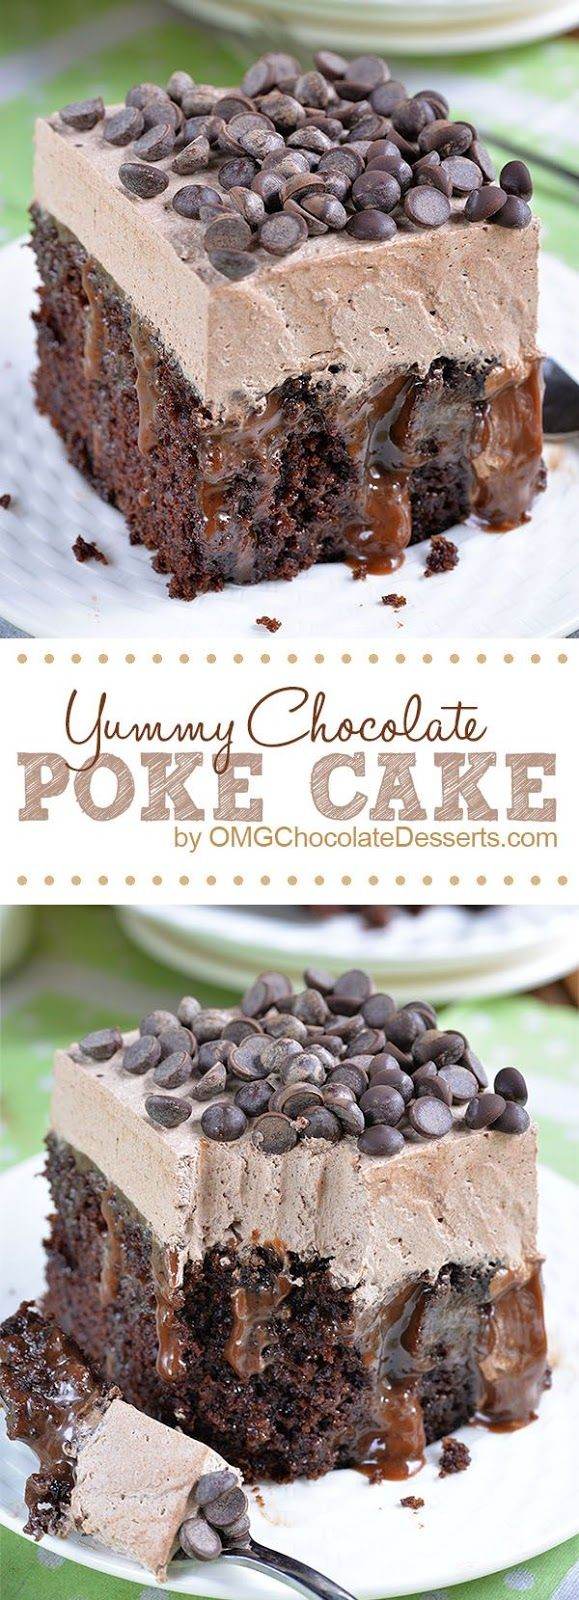 Chocolate Poke Cake is quadruple chocolate treat-rich chocolate cake infused with delicious mixture of melted chocolate and sweetened c...